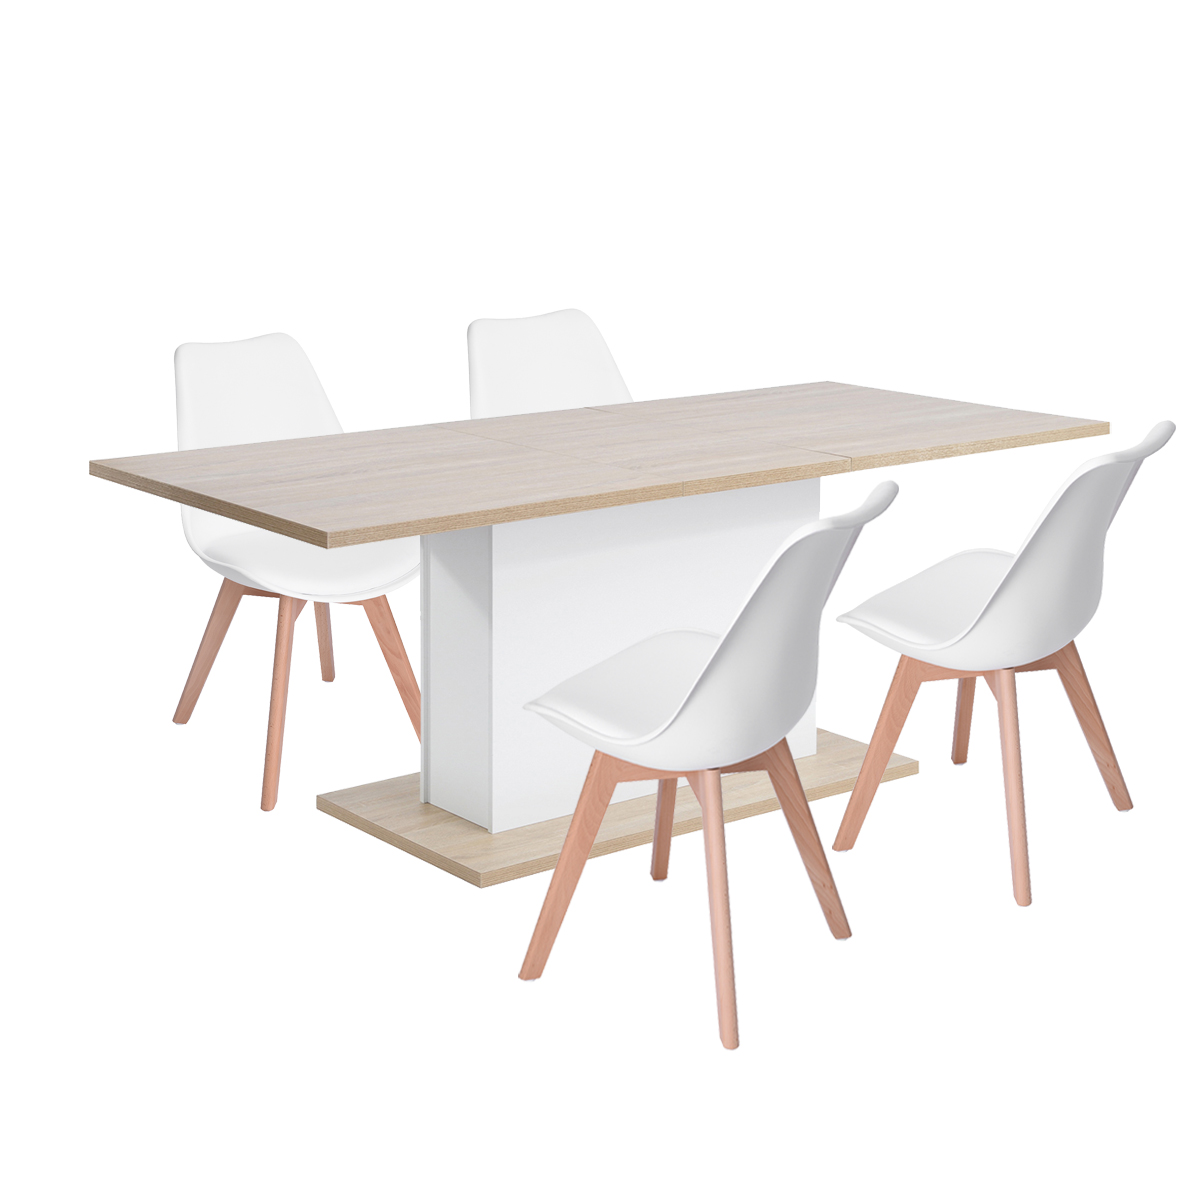 On Sale Big Promotion Beech Wood Top Extending Dining  : 7b7a8989 0acd 4654 a3ce d516115e5f35 from www.ebay.ie size 1200 x 1200 jpeg 67kB